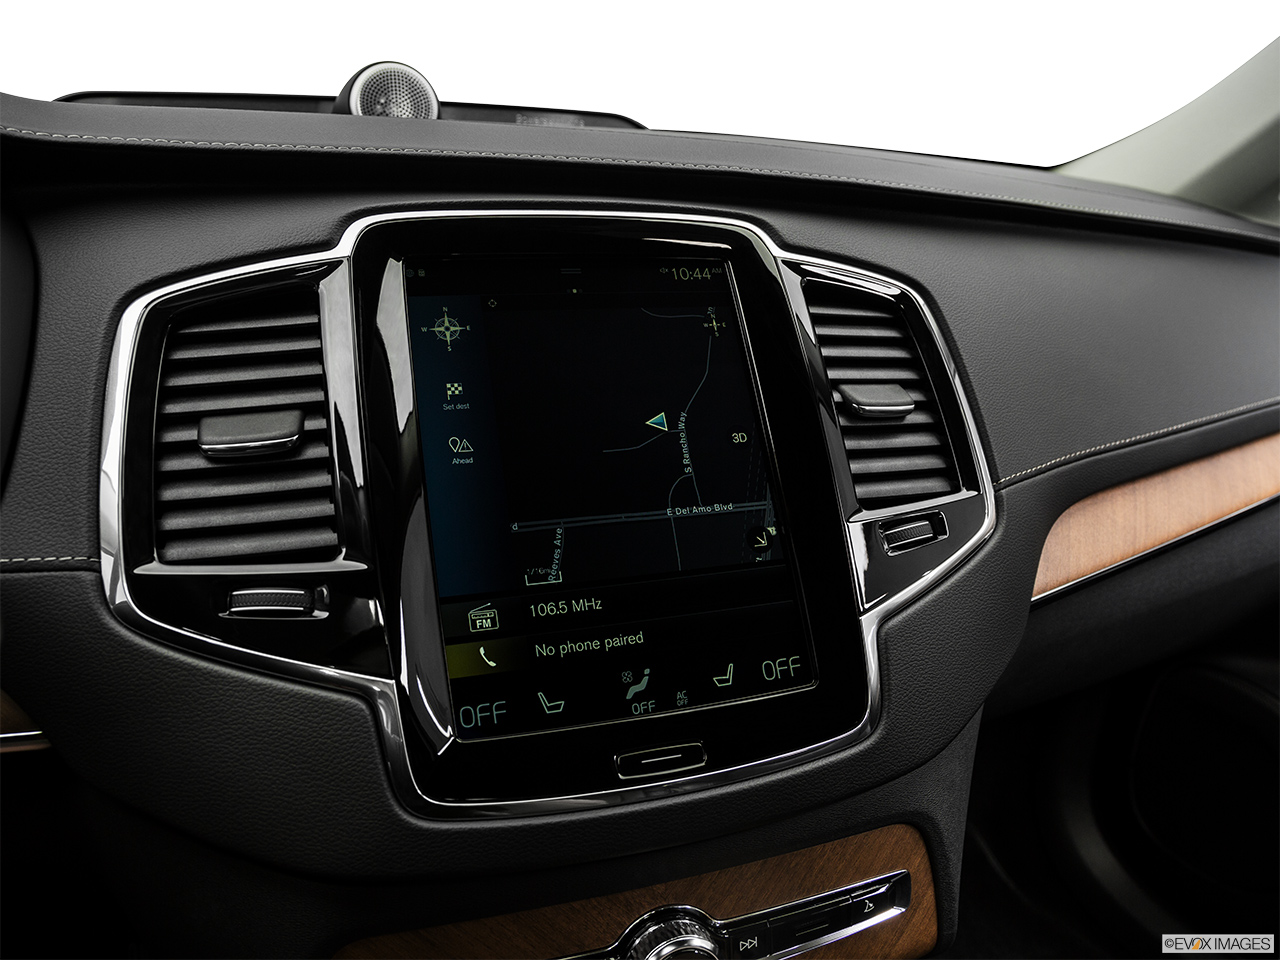 2019 Volvo XC90  T6 Inscription Driver position view of navigation system.